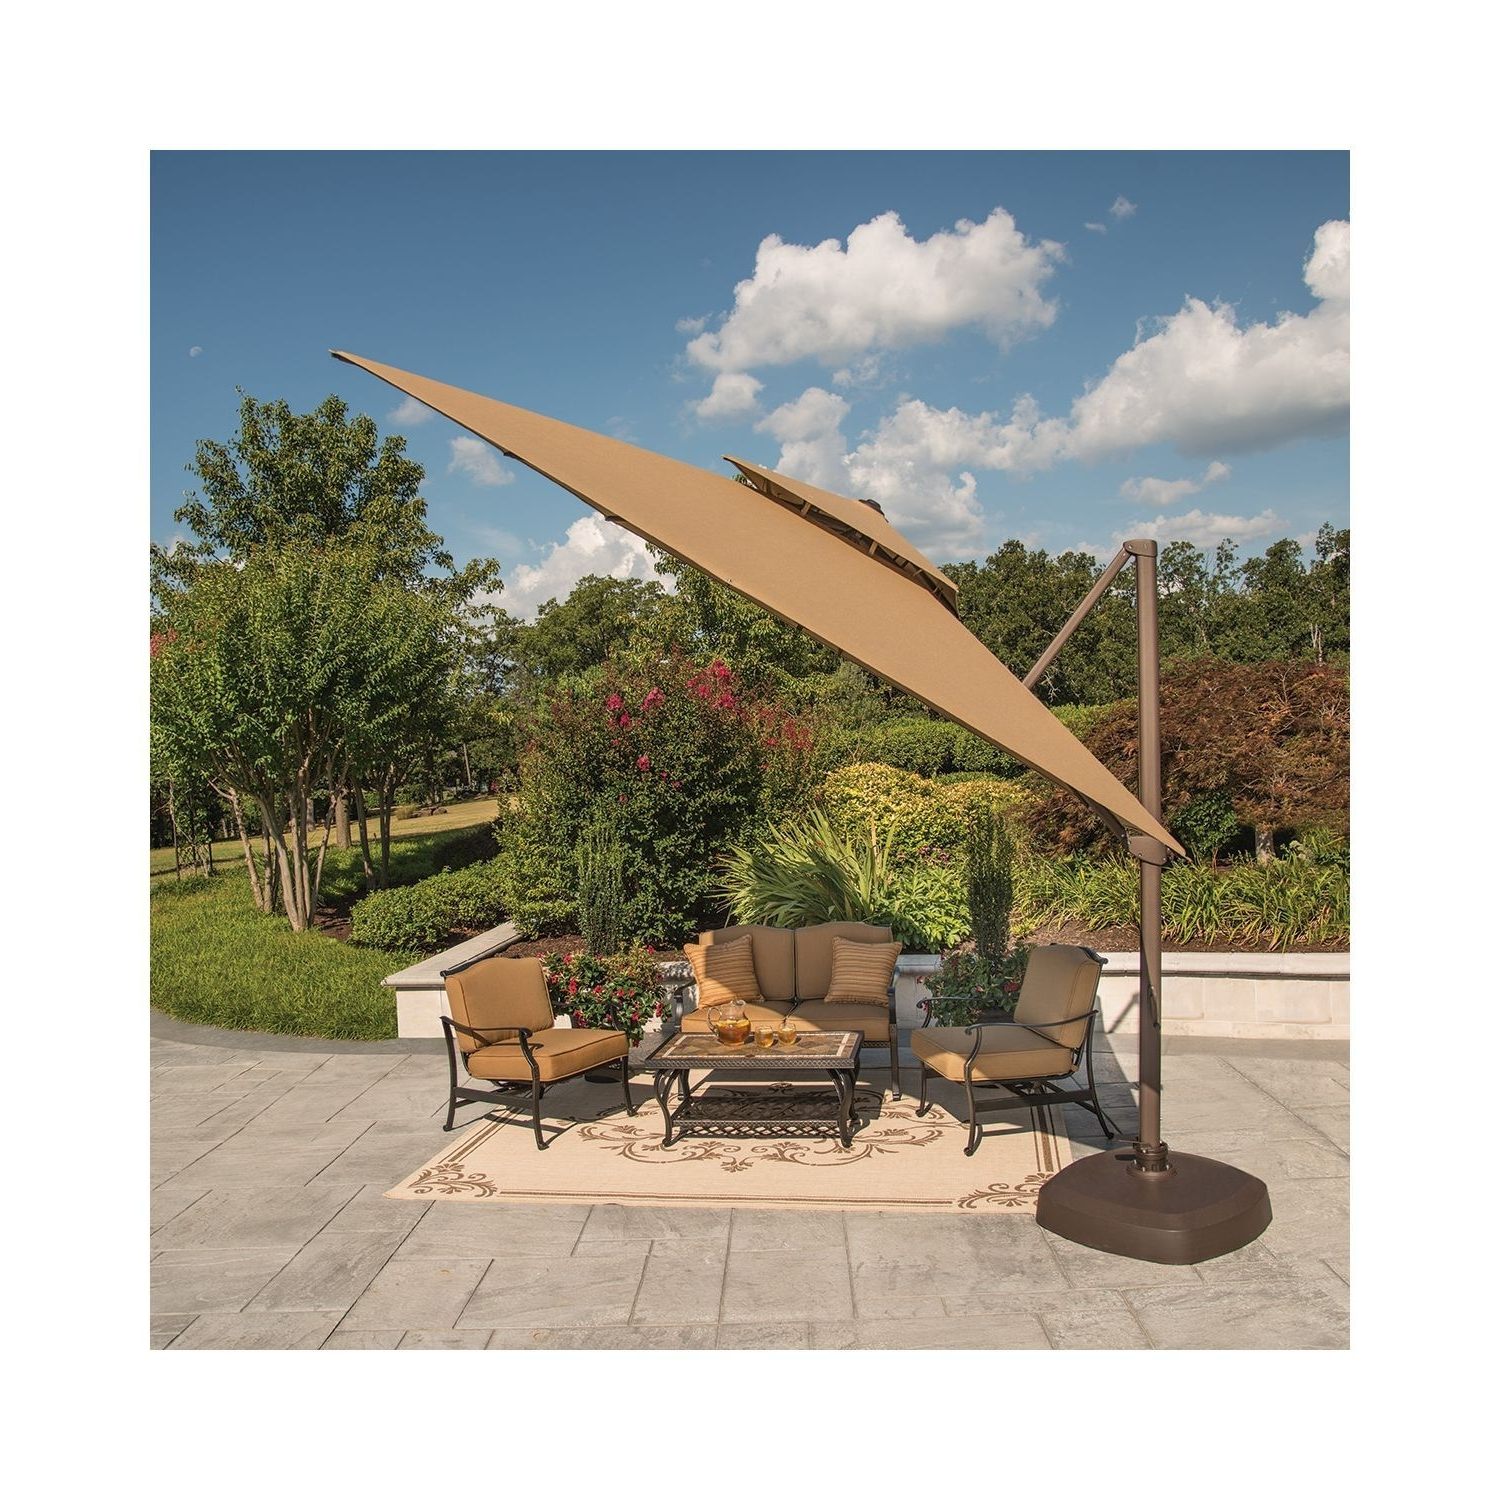 Sams Club Patio Umbrellas Within Well Known Member's Mark® 10 Foot Square Cantilever Umbrella With Premium (View 18 of 20)